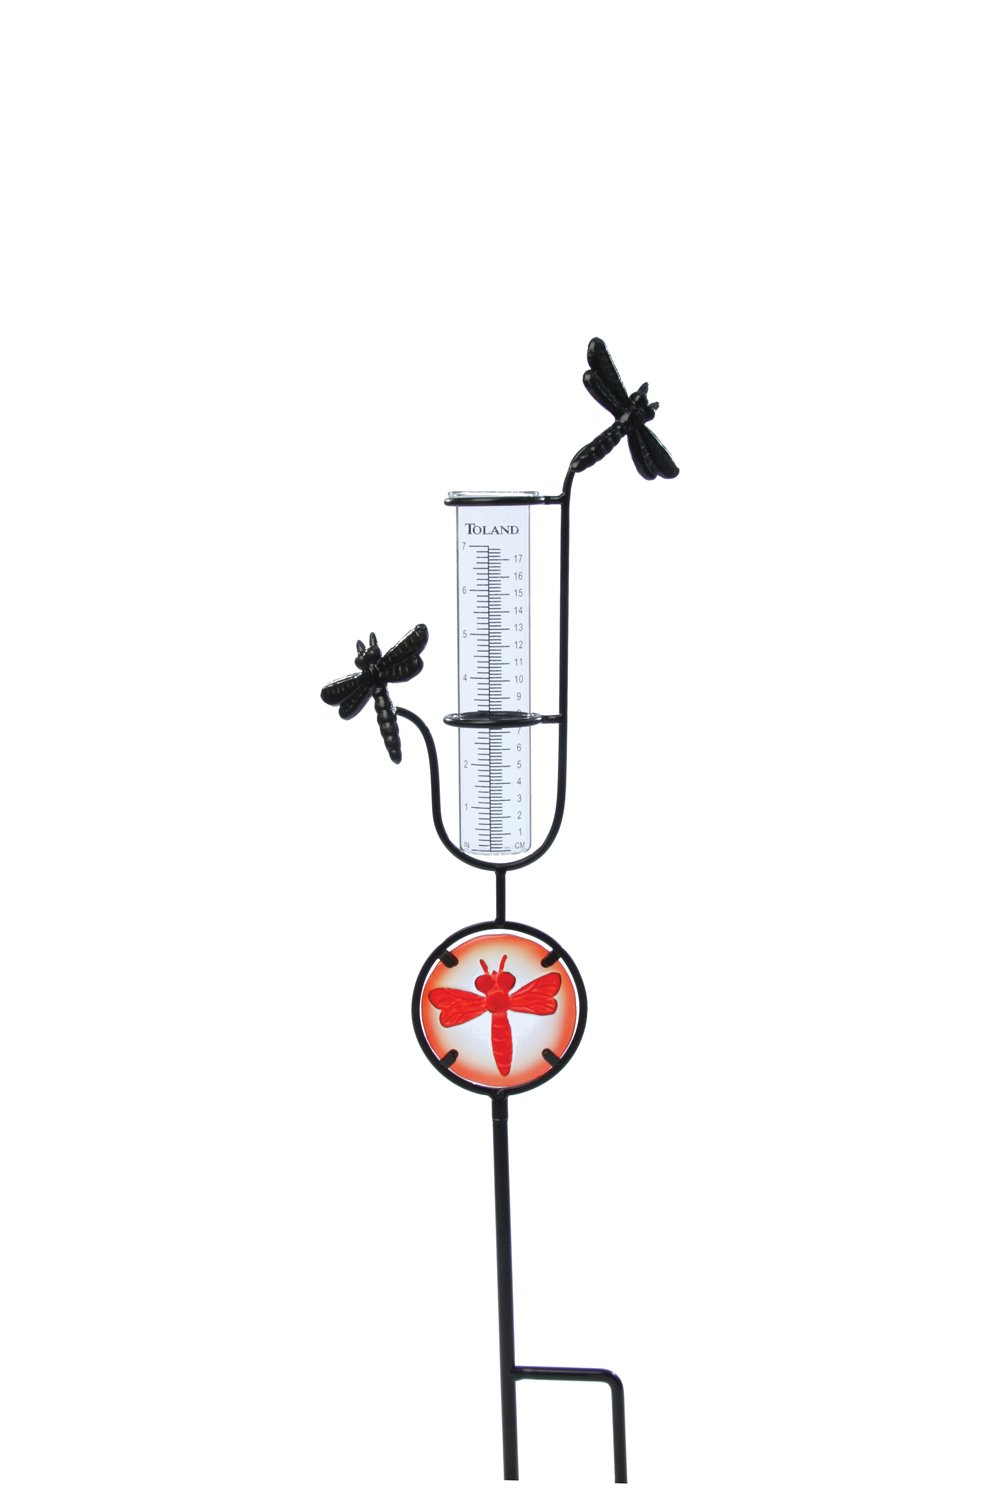 Toland Home Garden Dragonfly Decorative Outdoor Garden StakeRain Gauge Statuewith Glass Udometerfor Yards, Gardens, and Planters 218187